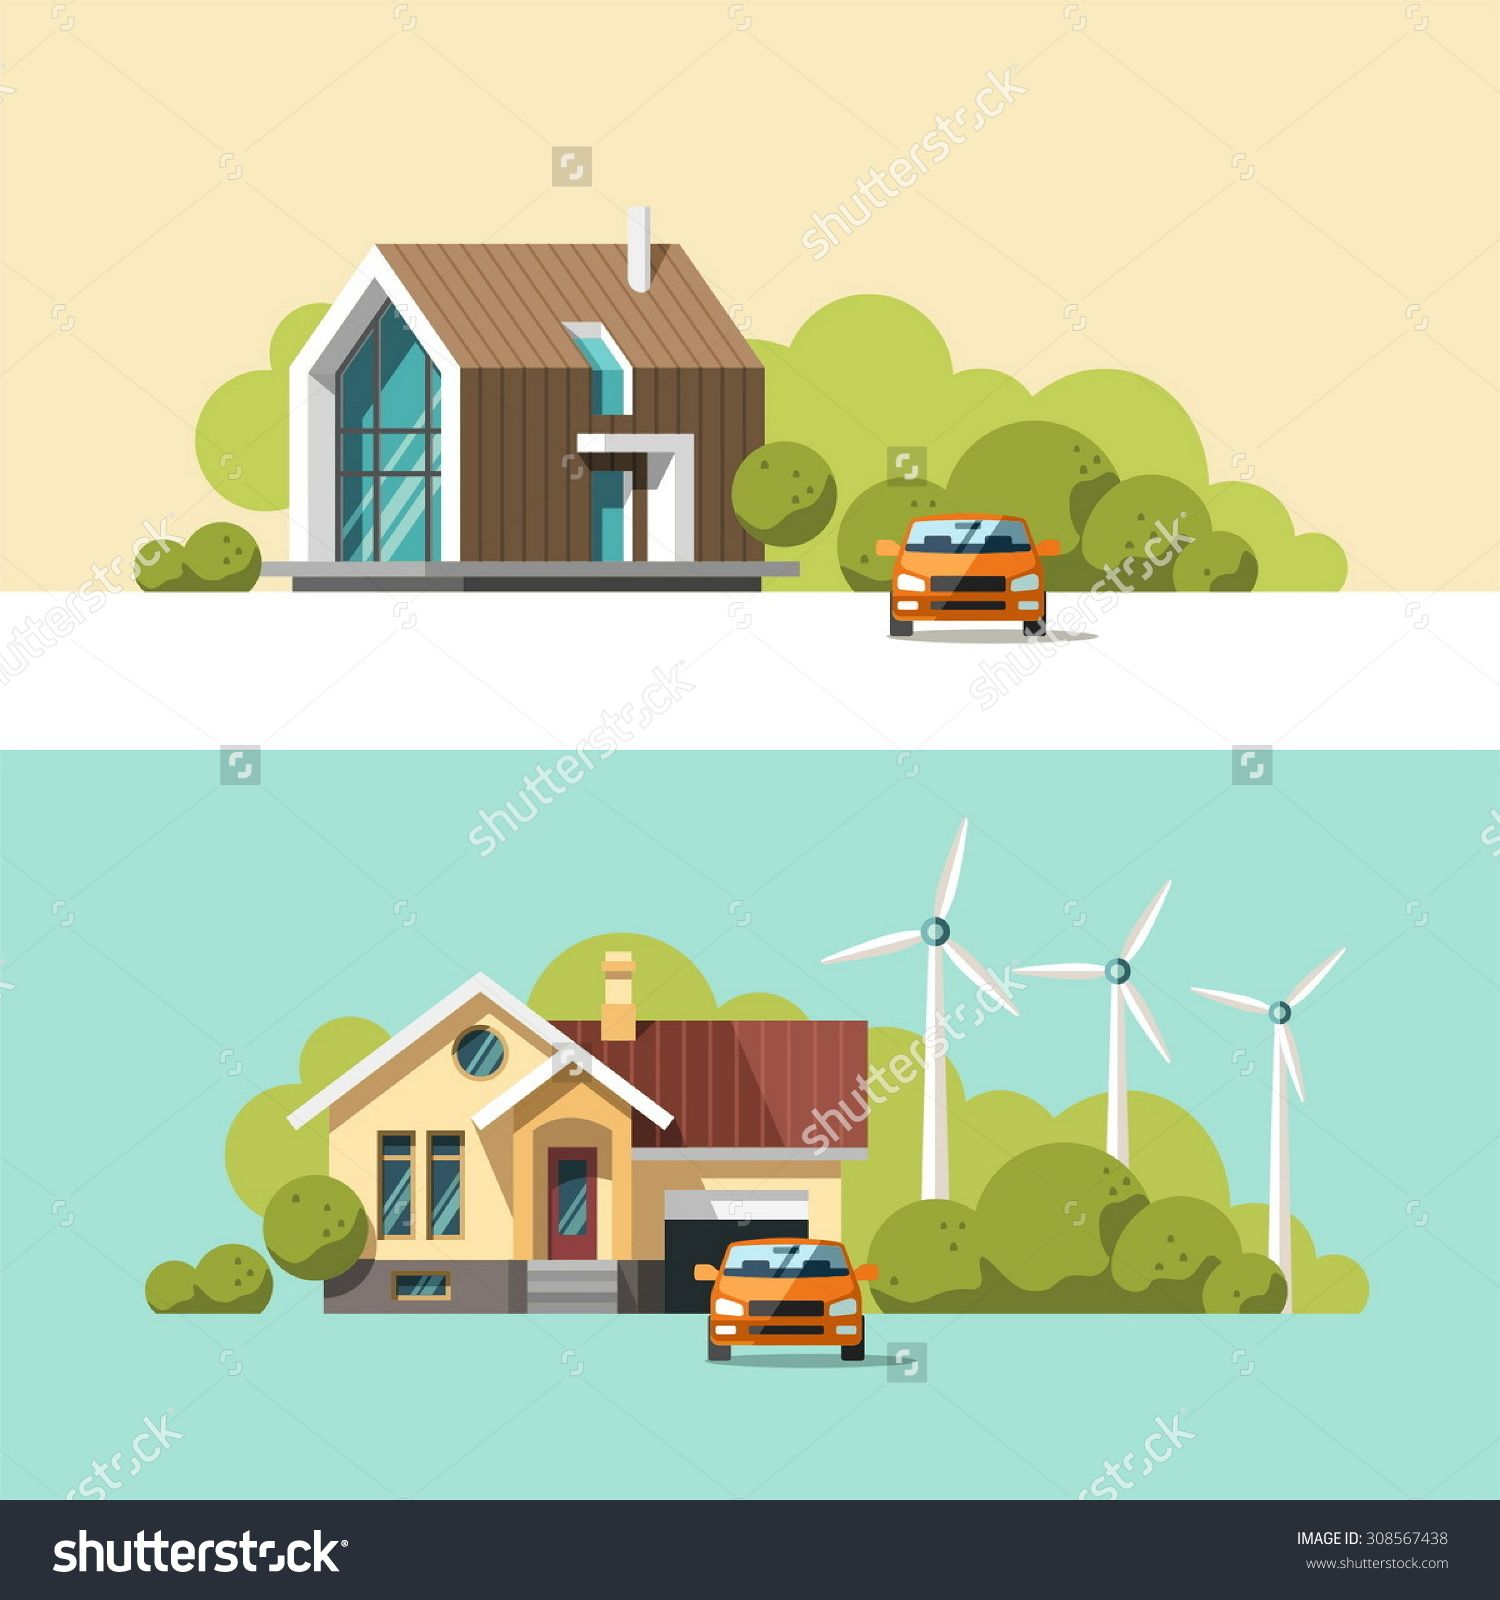 House design cartoon - Family Home Traditional And Modern House Flat Design Vector Concept Illustration